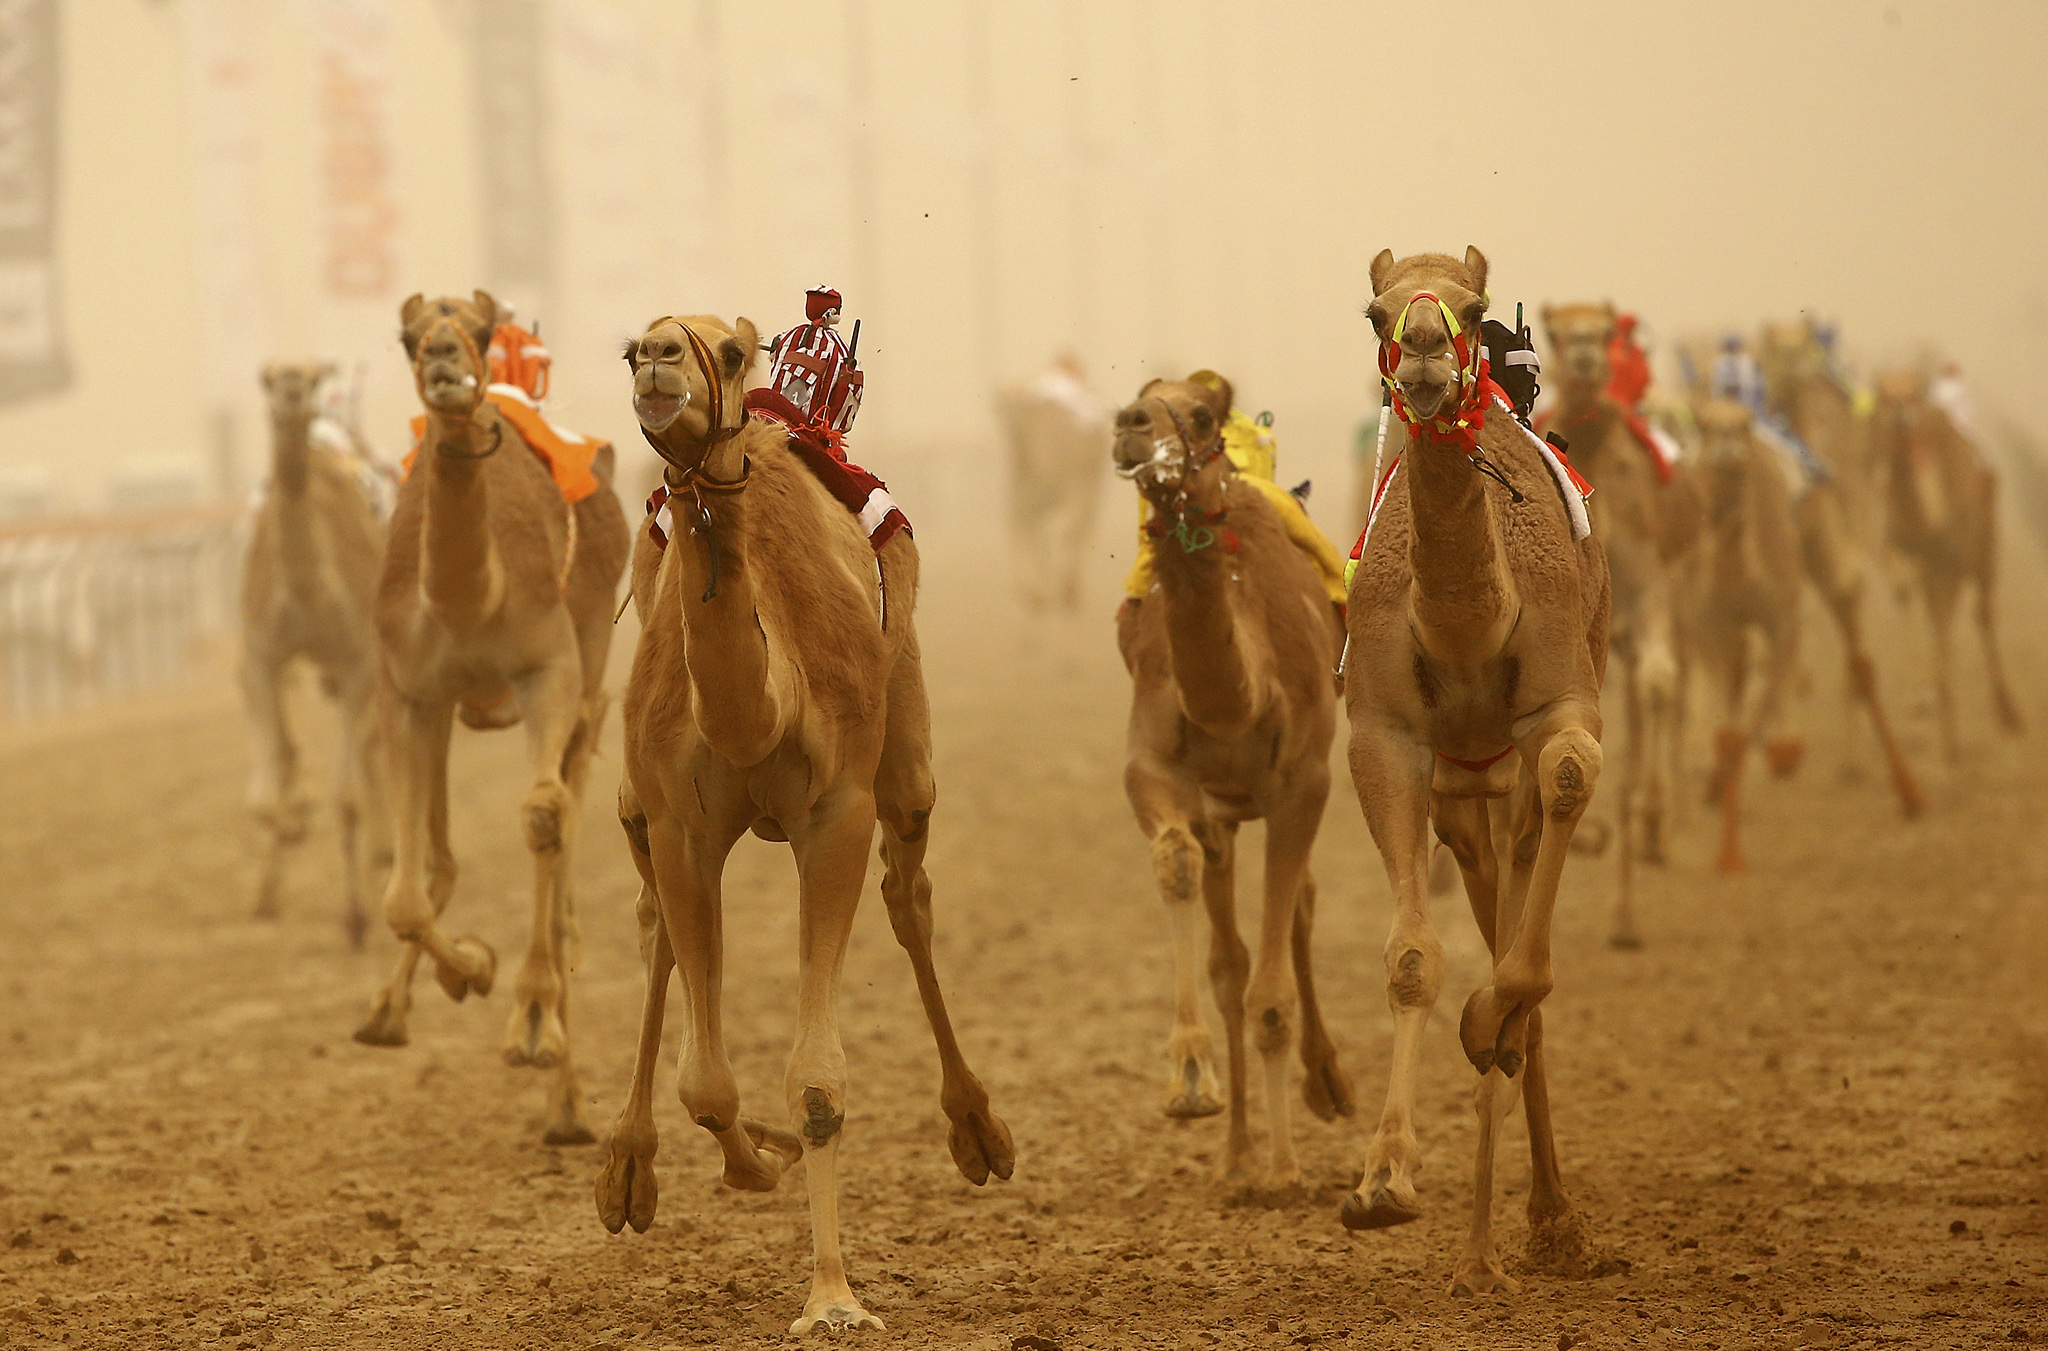 Al Marmoon Heritage Festival Camel Racing...DUBAI, UNITED ARAB EMIRATES - APRIL 02: Camels race during Al Marmoom Heritage Festival at the Al Marmoom Camel Racetrack on April 2, 2015 in Dubai, United Arab Emirates. The festival promotes the traditional sport of camel racing within the region.  (Photo by Francois Nel/Getty Images)